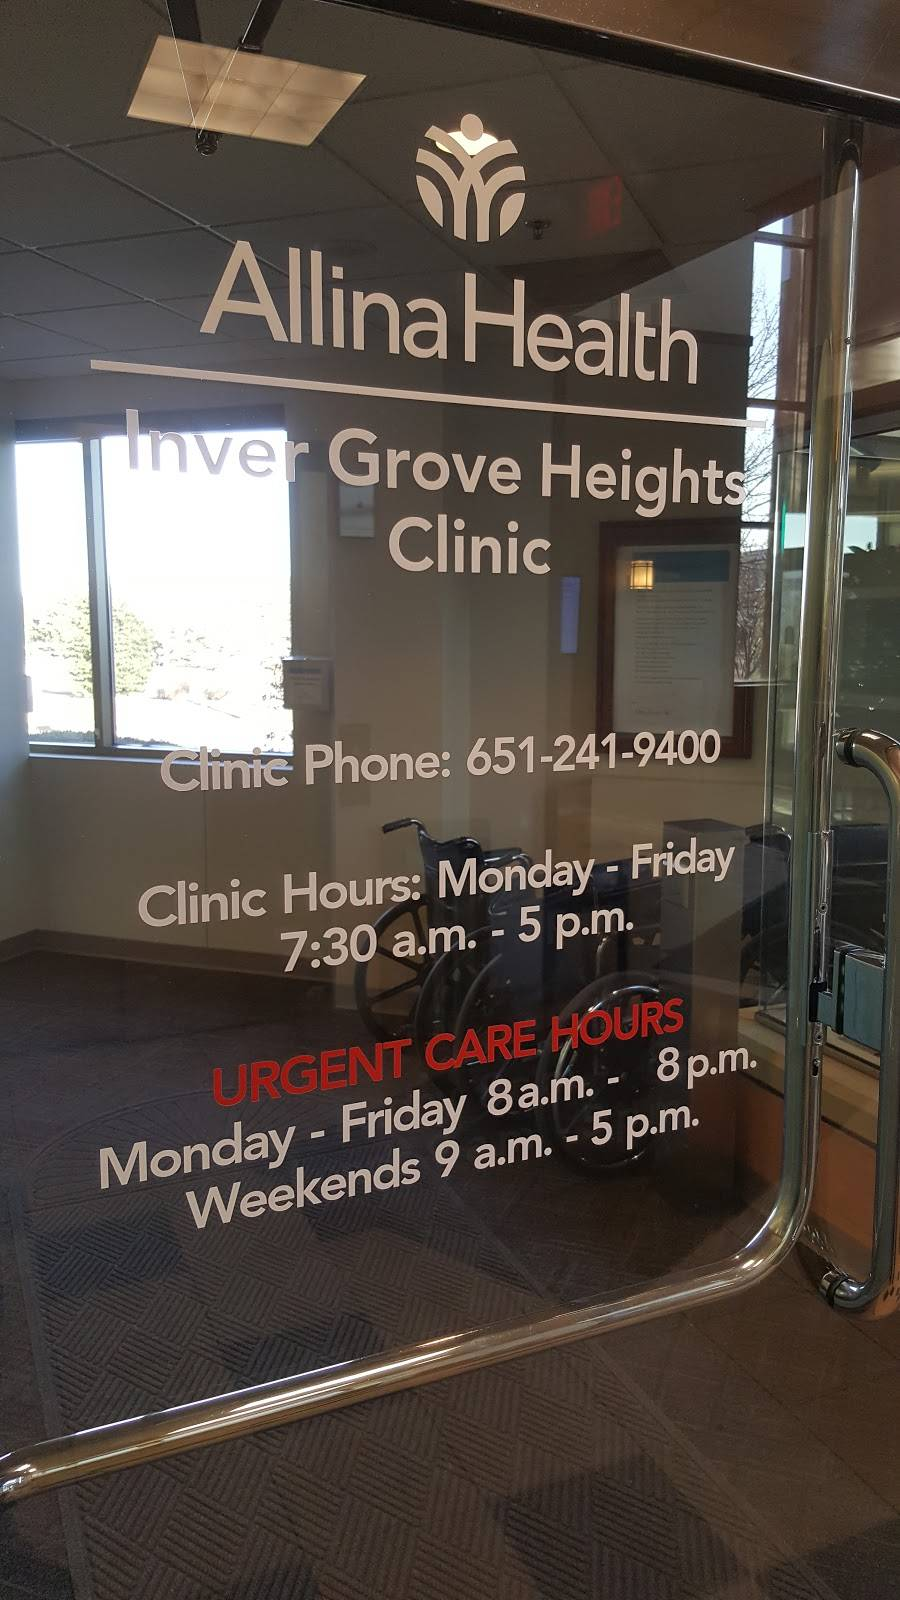 Allina Health Inver Grove Heights Clinic - hospital  | Photo 2 of 2 | Address: 5565 Blaine Ave E, Inver Grove Heights, MN 55076, USA | Phone: (651) 241-9400